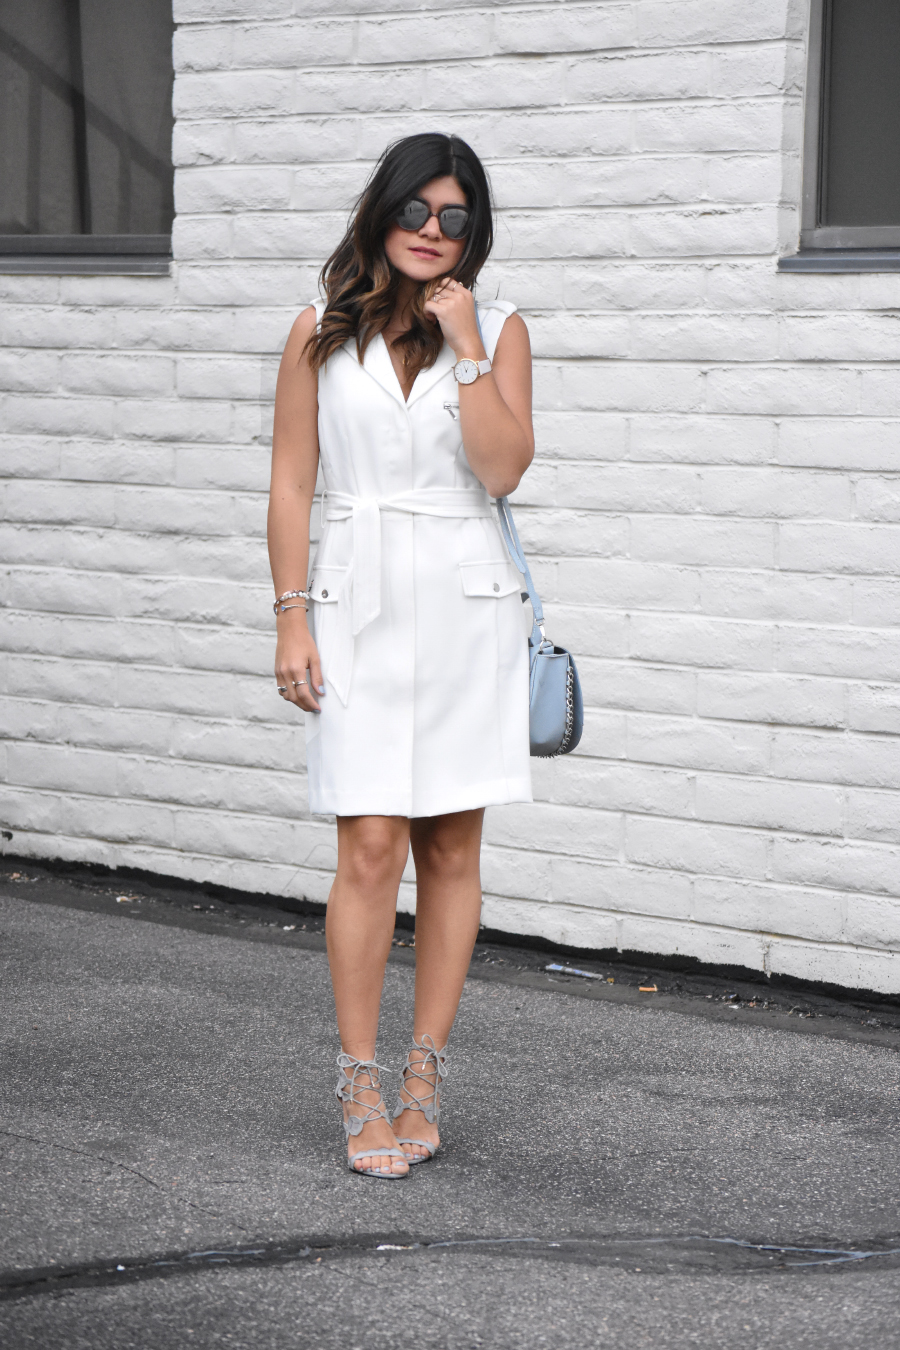 LOOK OF THE DAY. WHITE SHIFT DRESS VIA BAR III